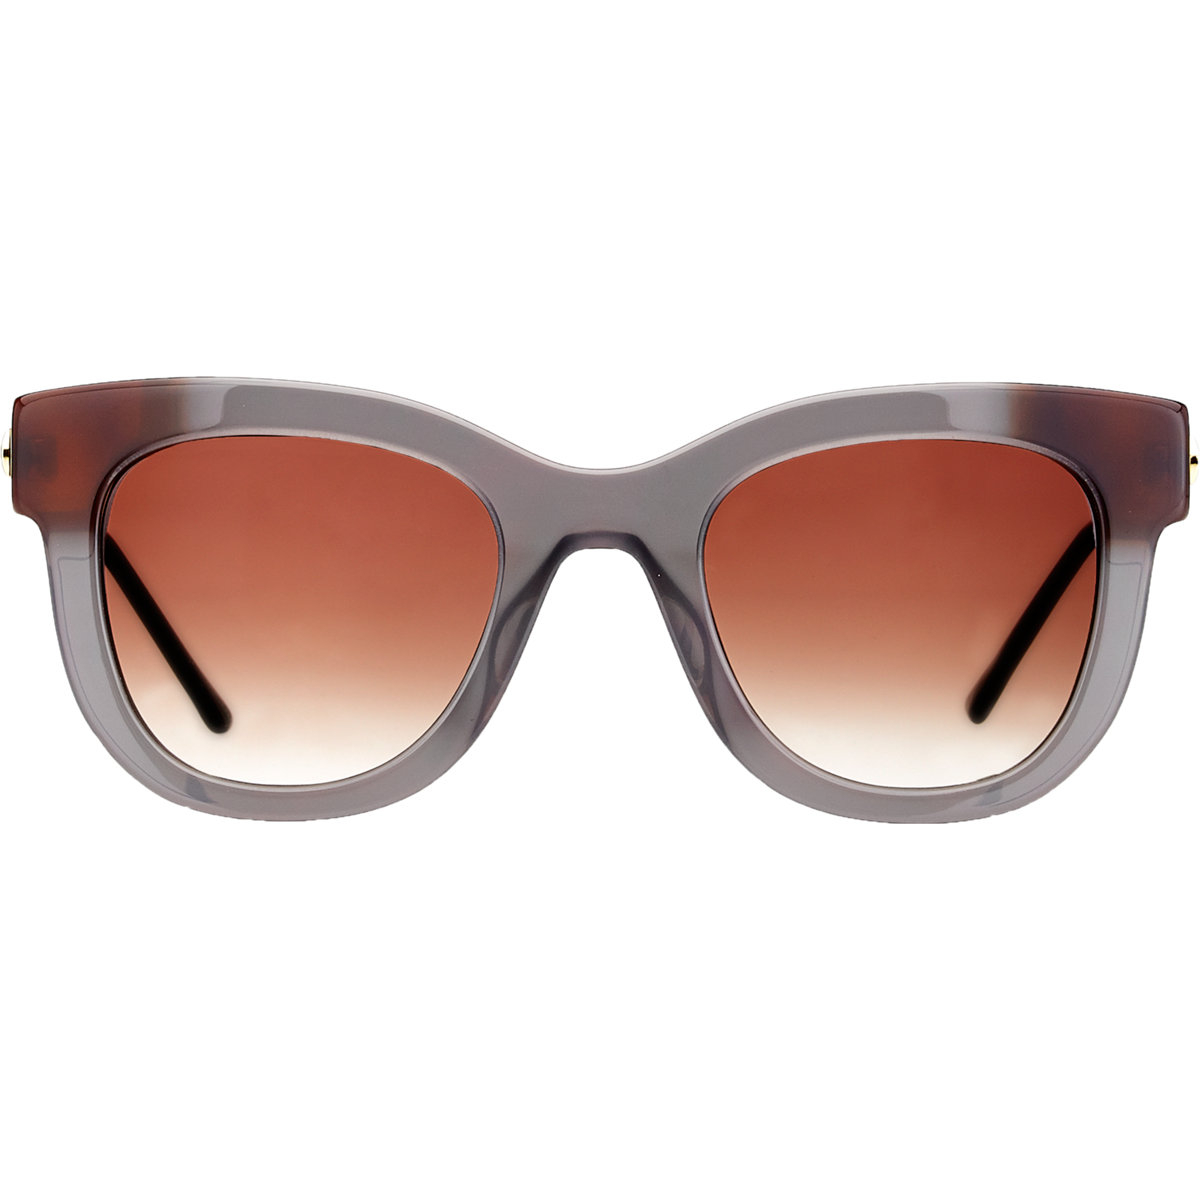 Thierry lasry Sexxxy Sunglasses in Gray